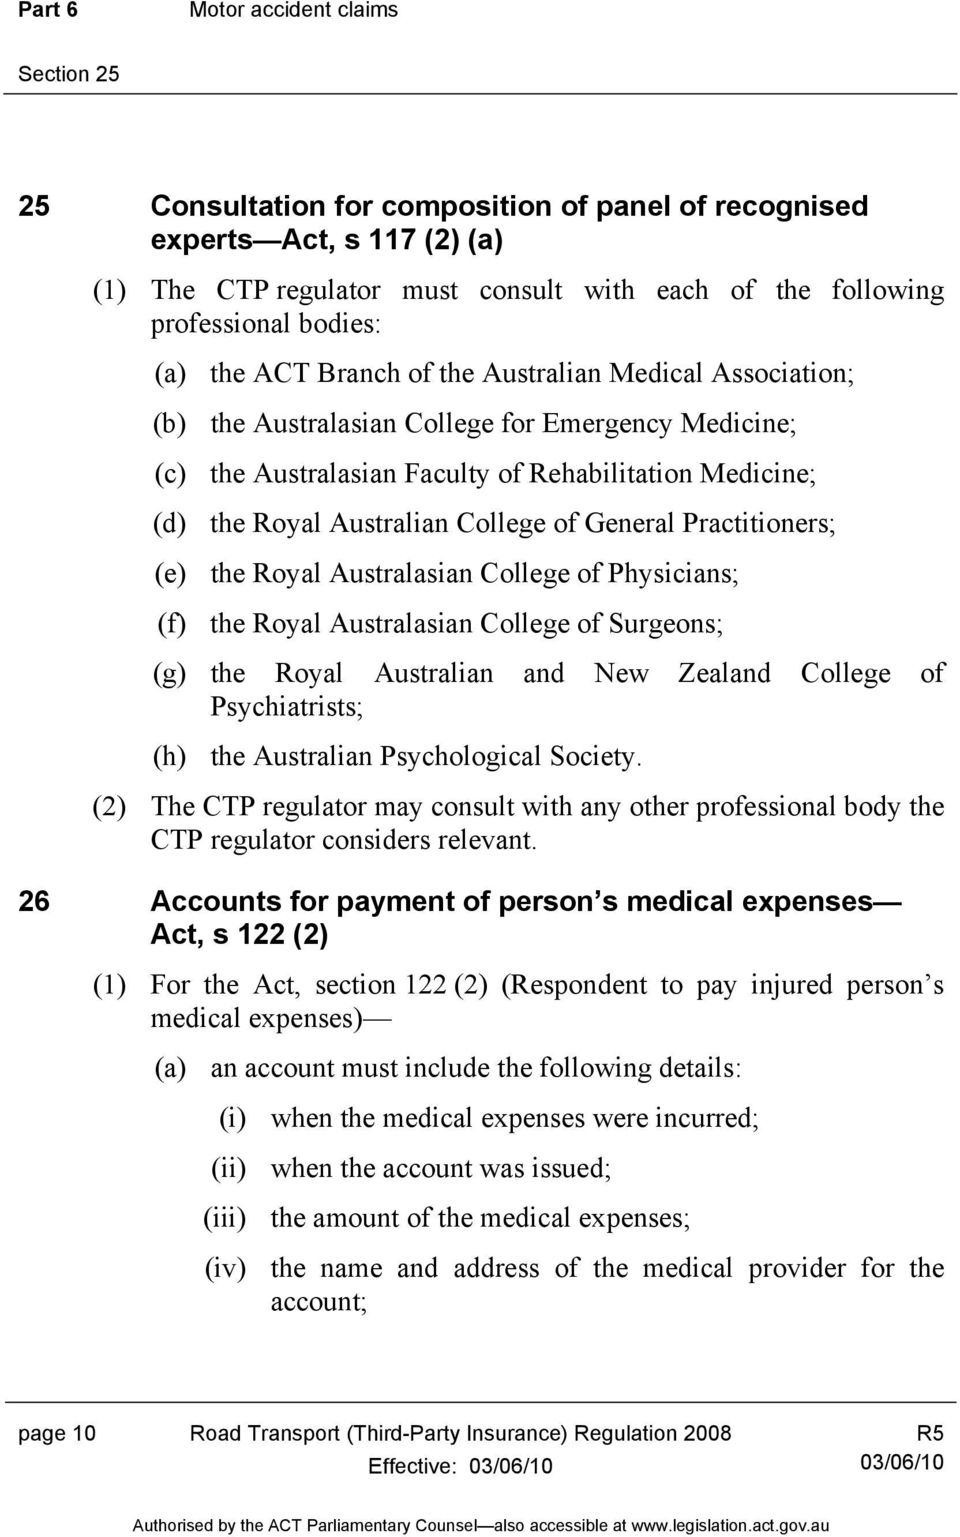 Australian College of General Practitioners; (e) the Royal Australasian College of Physicians; (f) the Royal Australasian College of Surgeons; (g) the Royal Australian and New Zealand College of